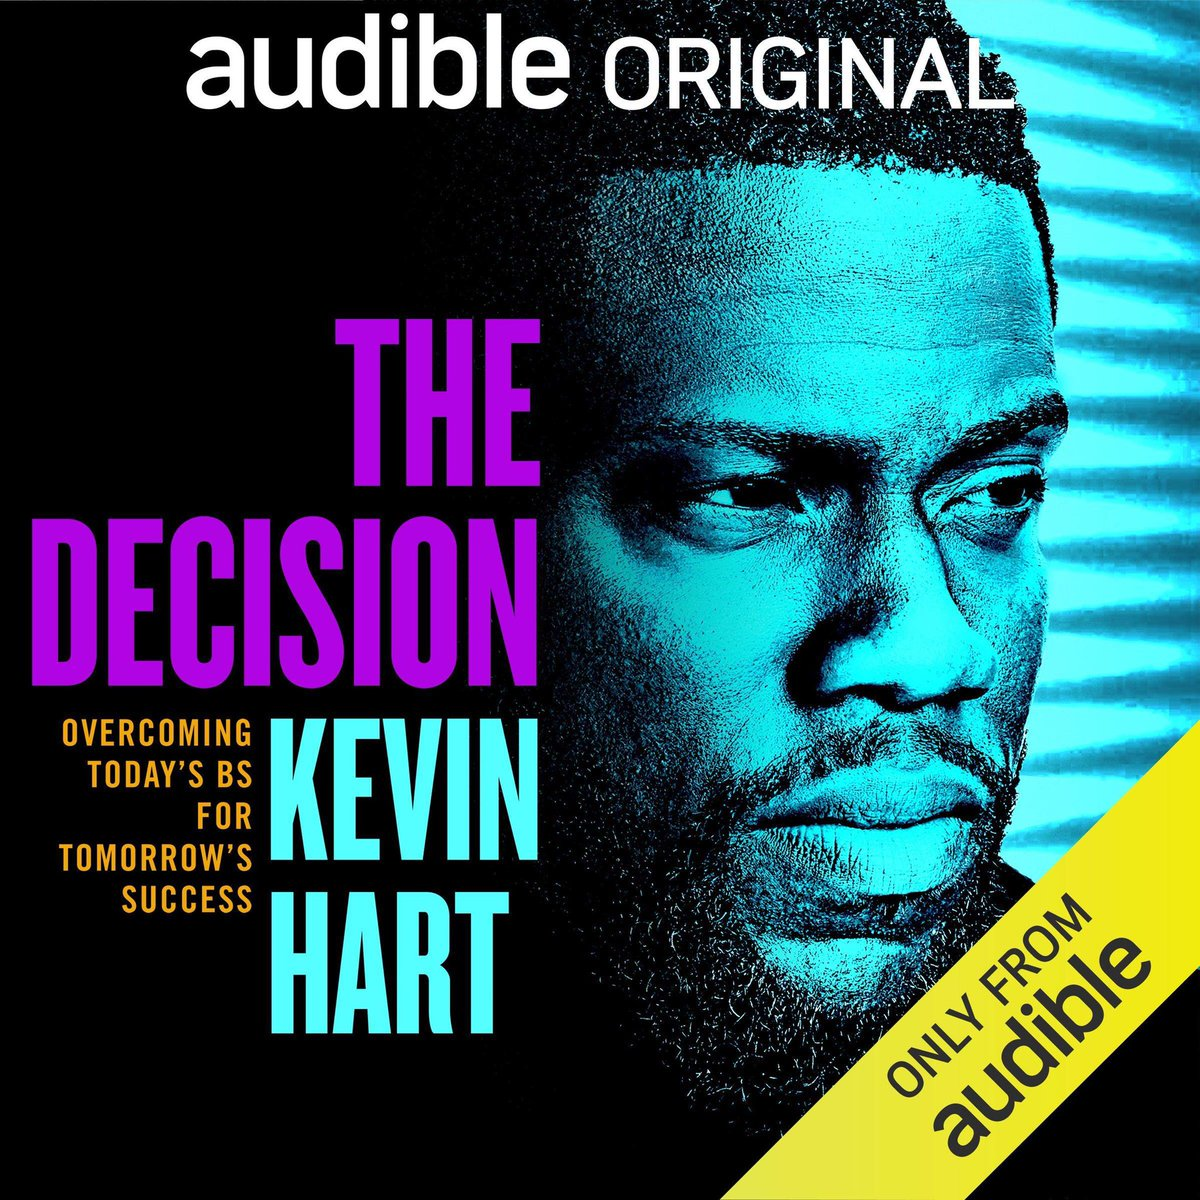 This is a MUST. It's free if you've never listened to a book on Audible. Download it and listen all the way through. Get your mindset RIGHT. Thank you 💫 @KevinHart4real https://t.co/IQn1ZXWirI